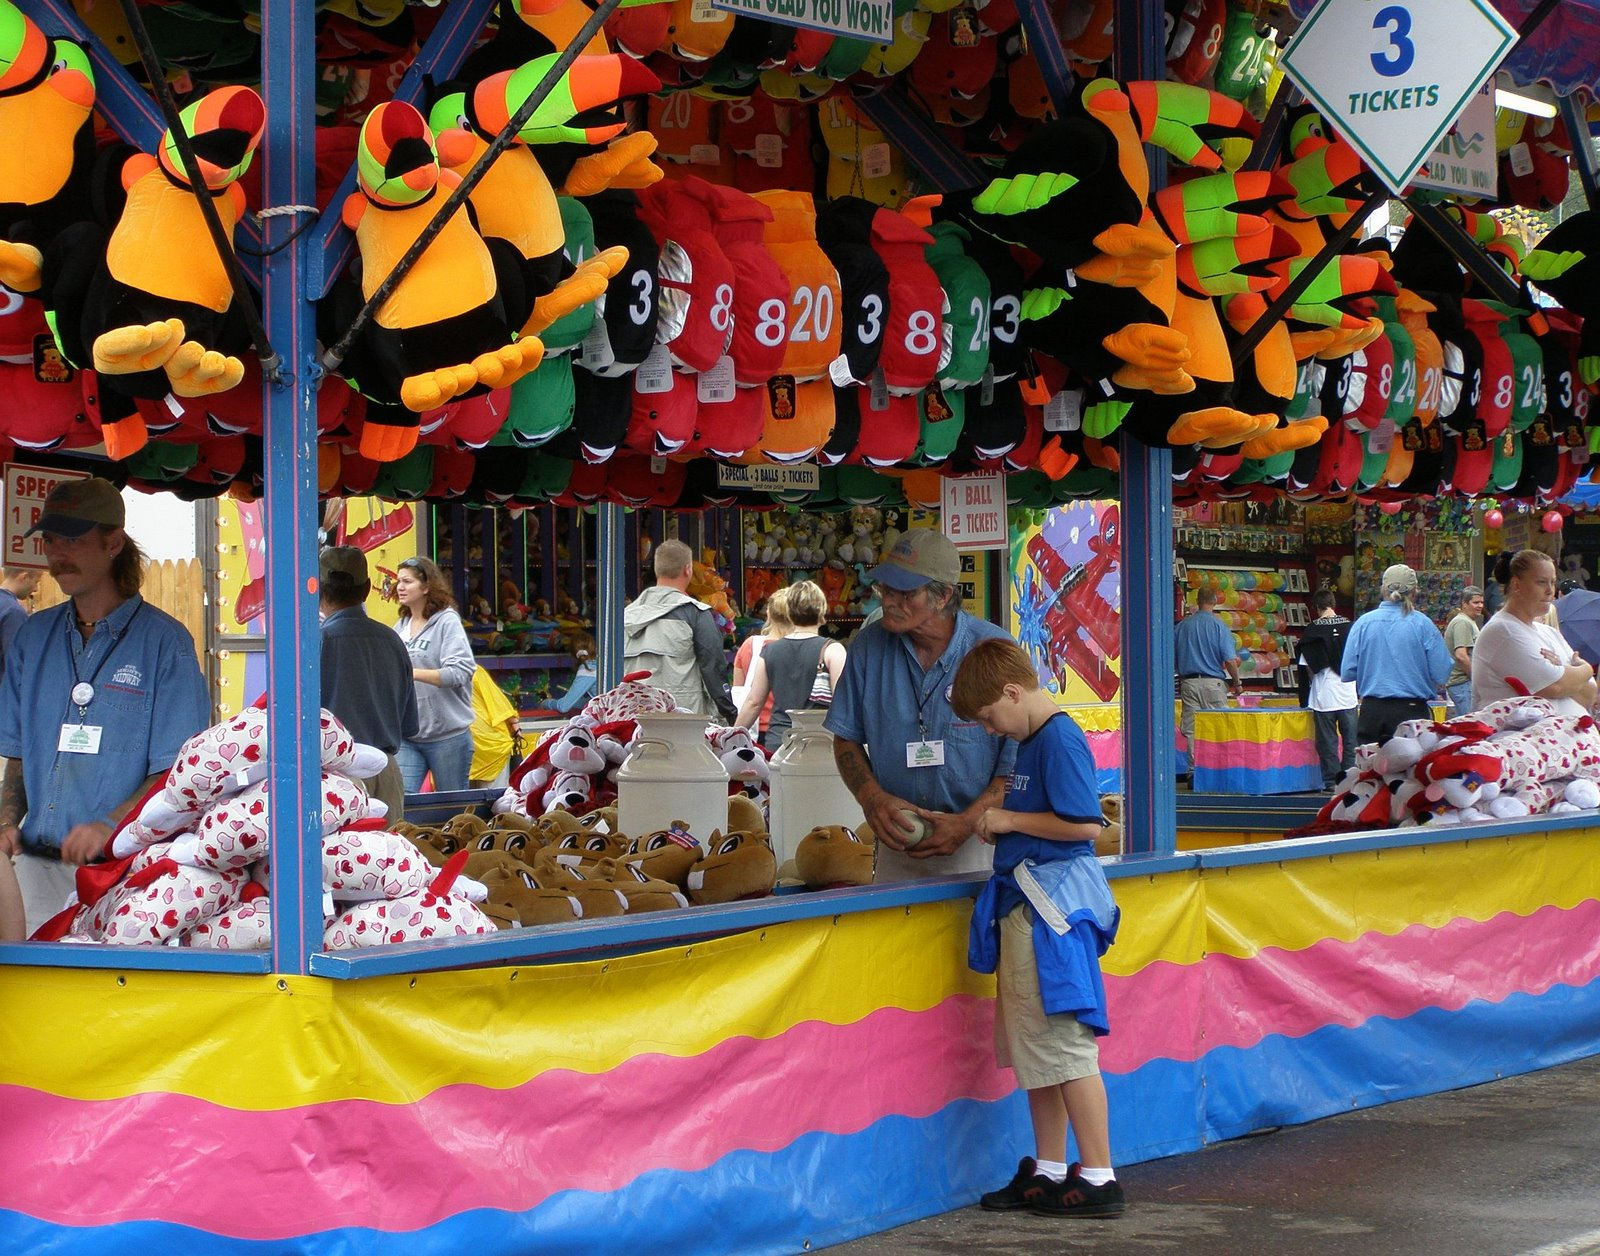 midway game, Minnesota State Fair